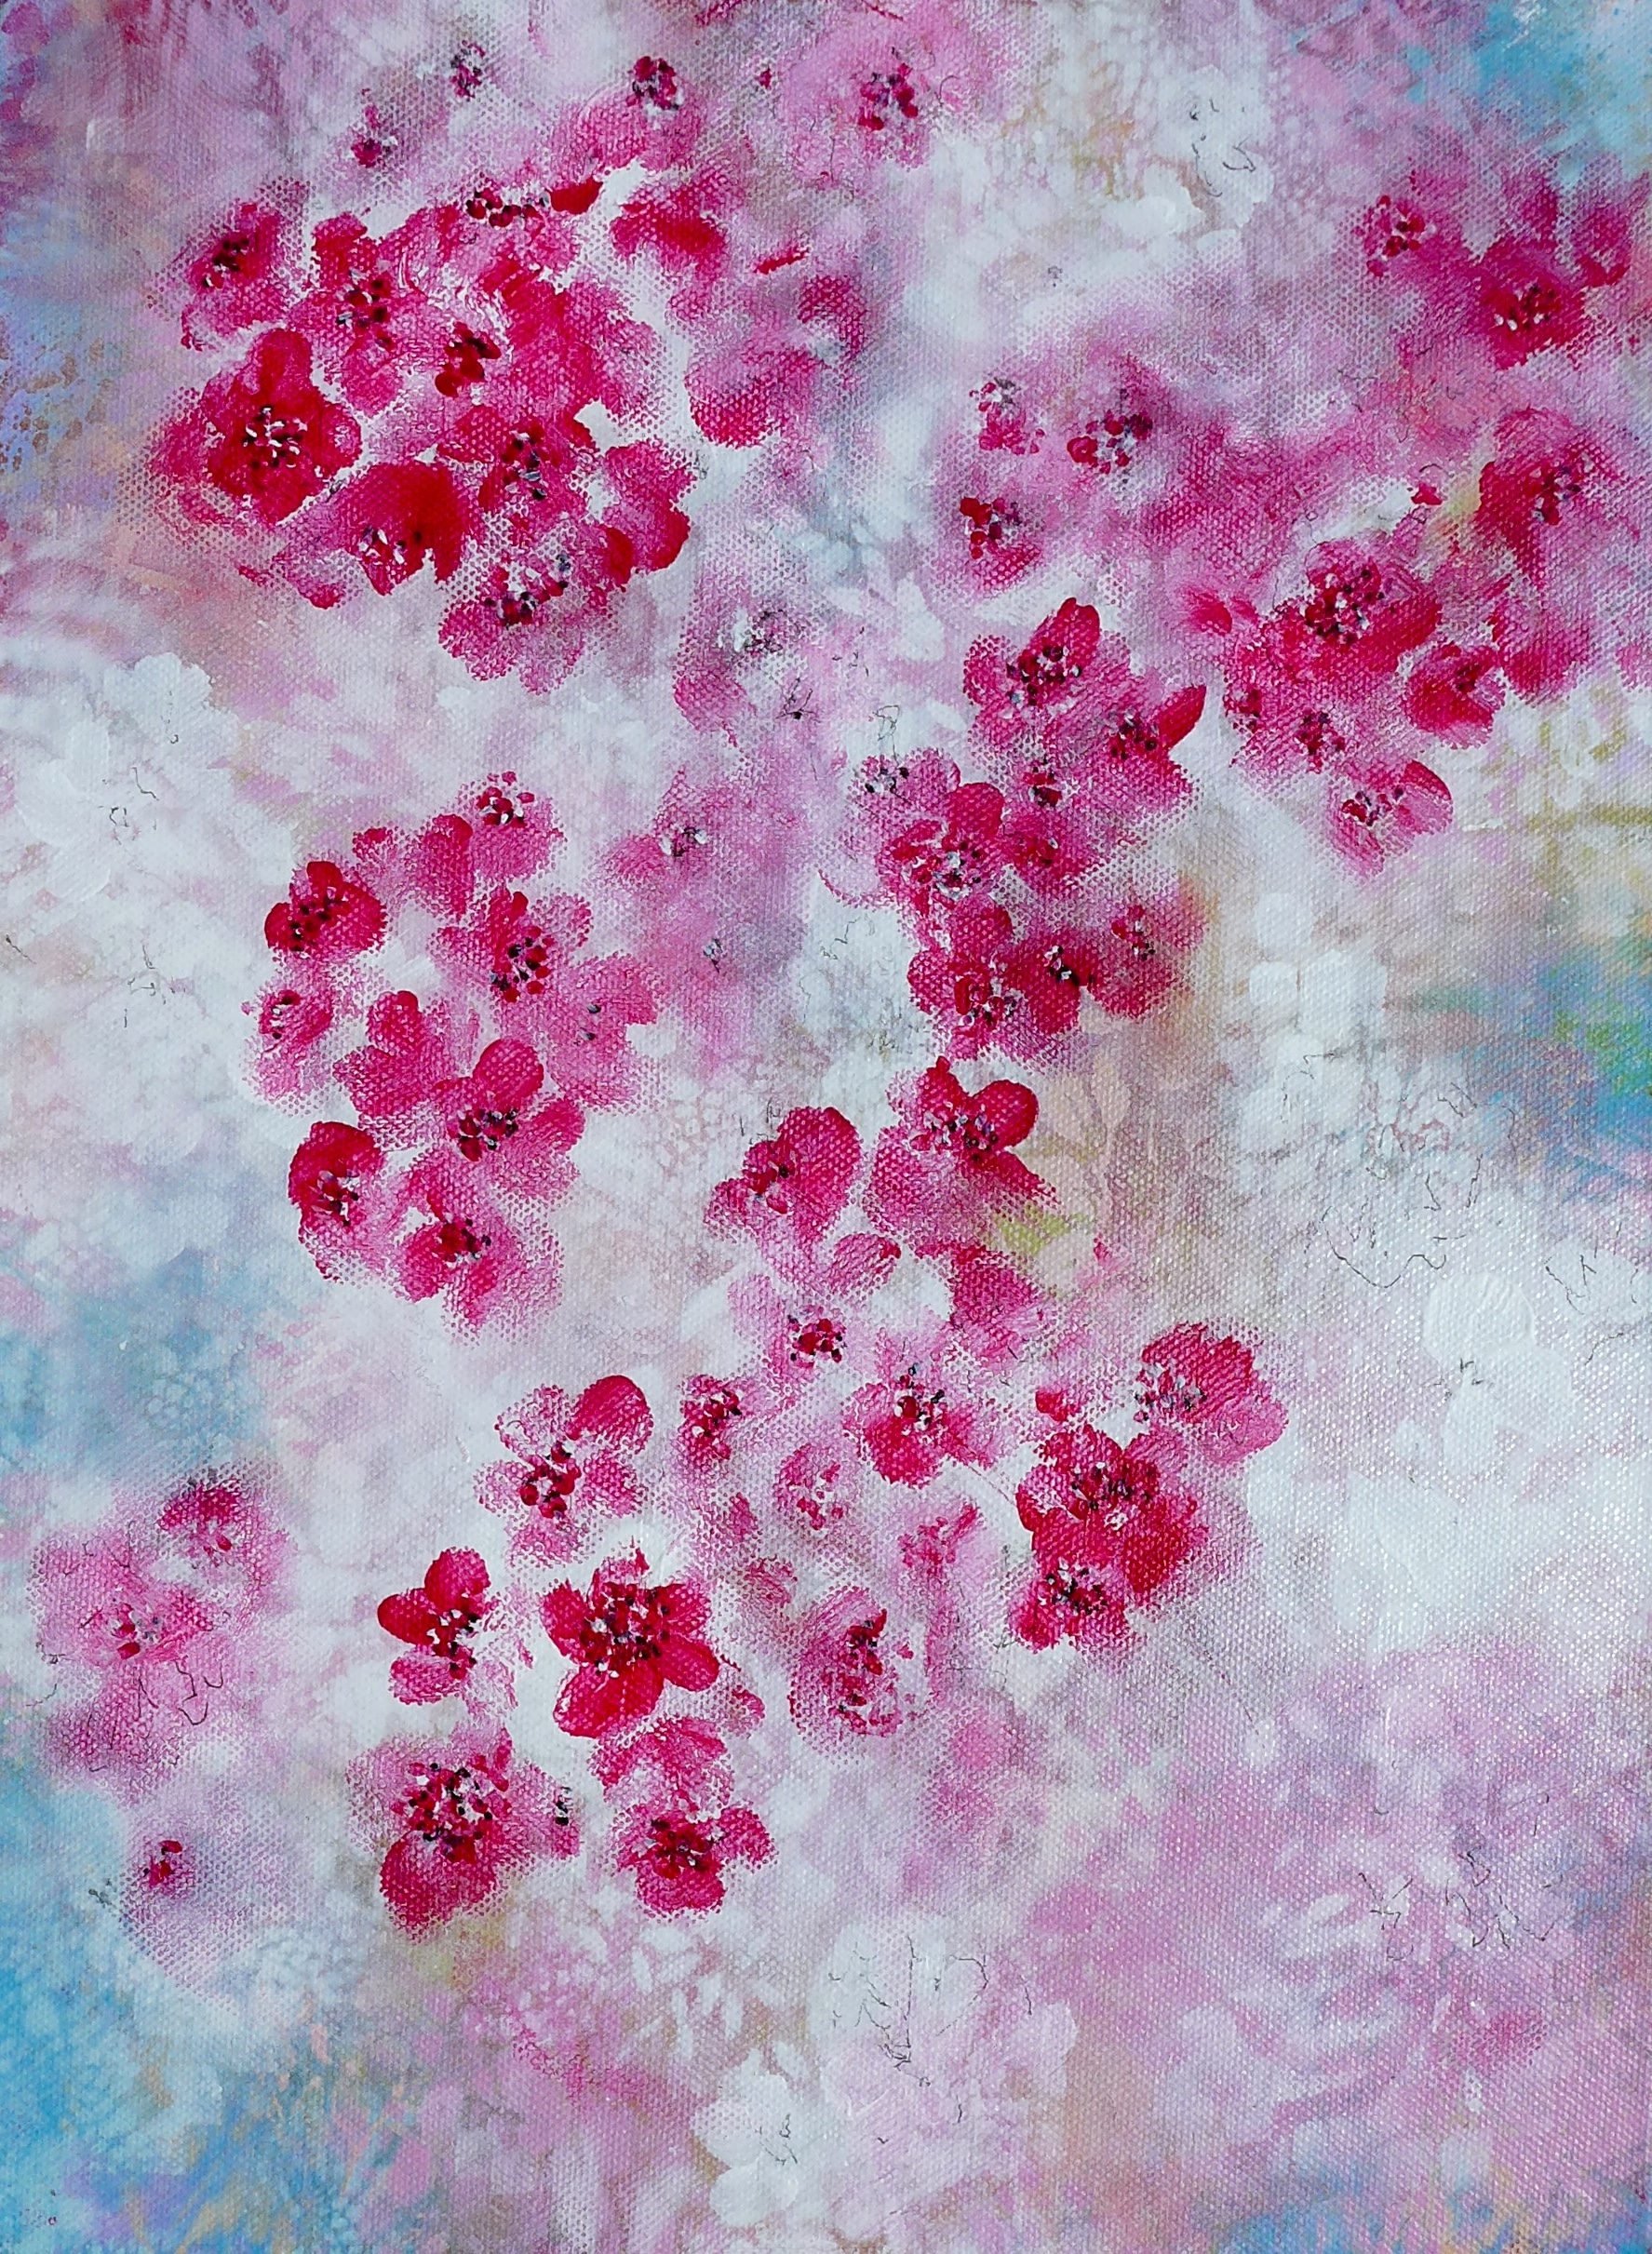 'Blossom 4' painting by Nicki MacRae.